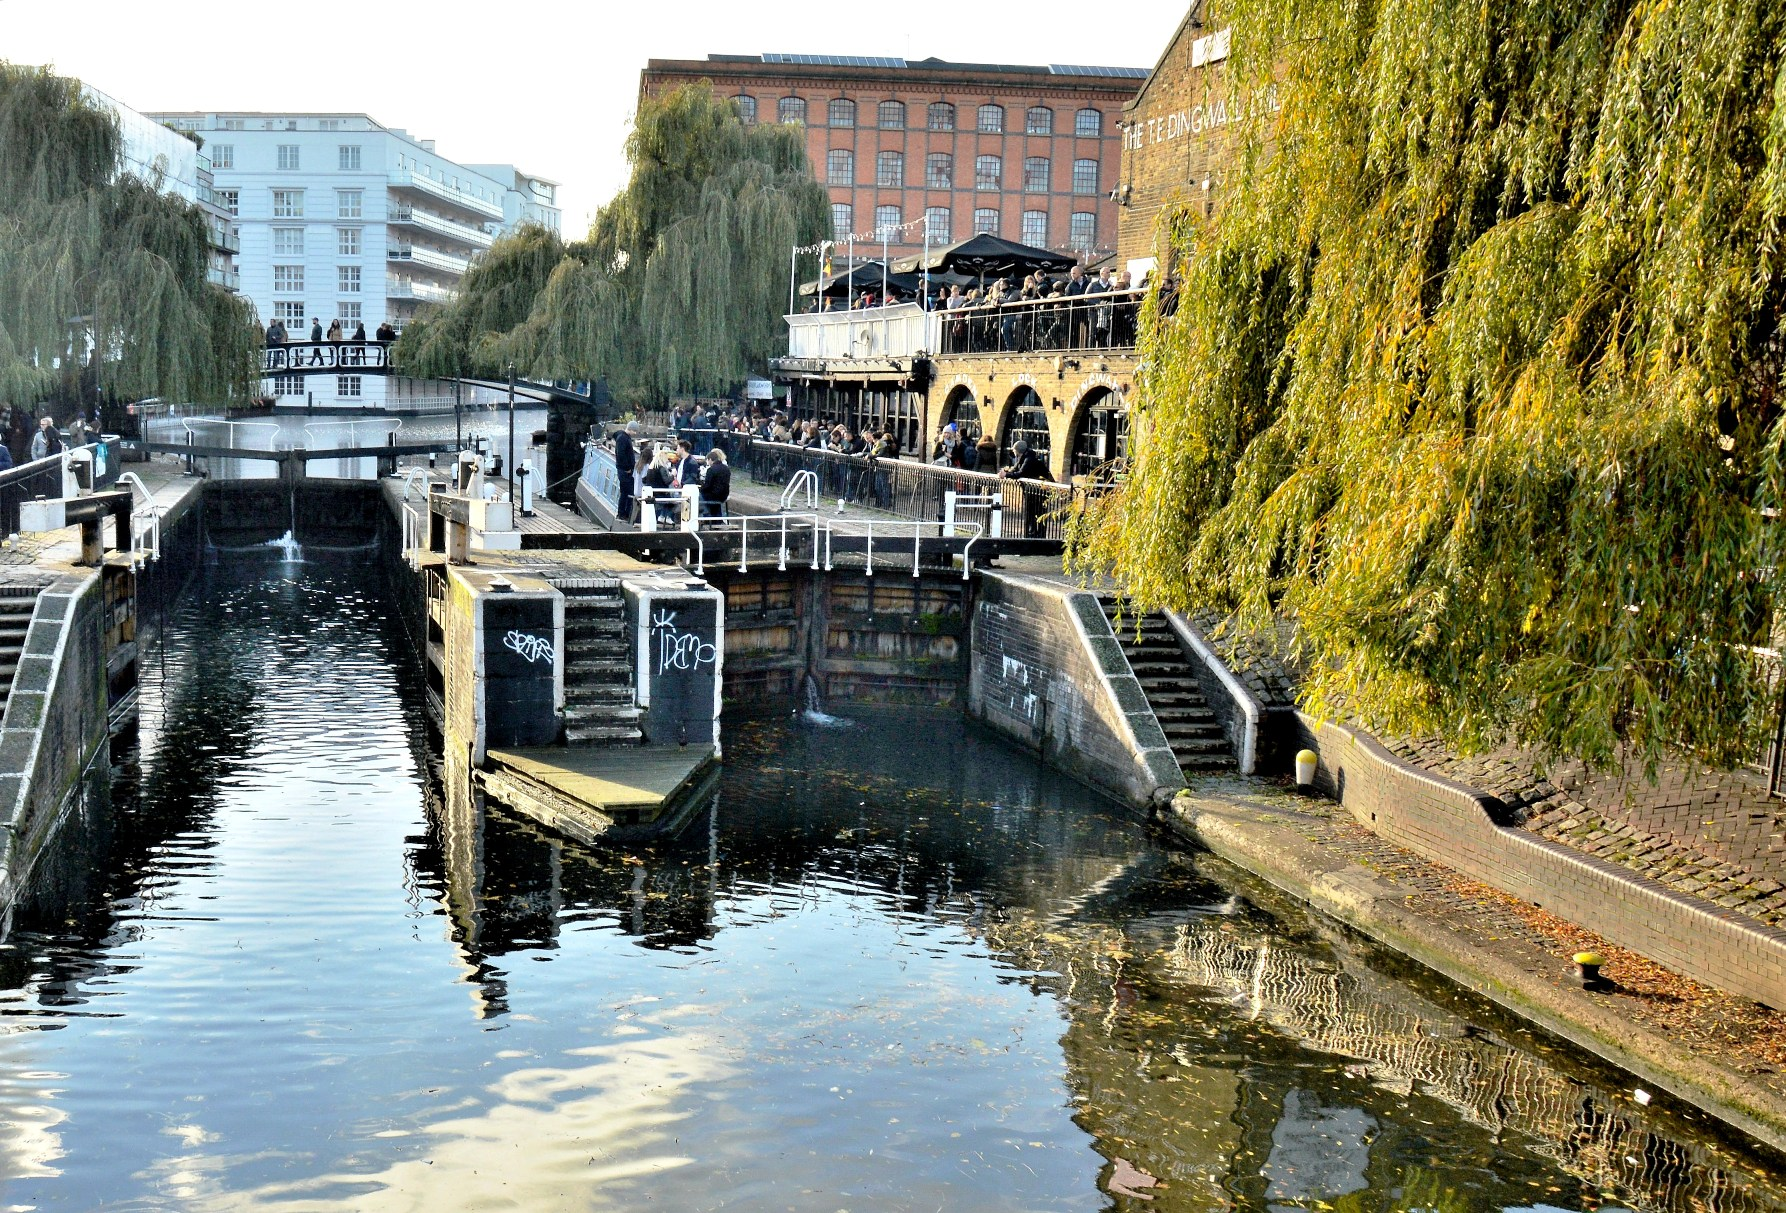 camden lock market how to get there